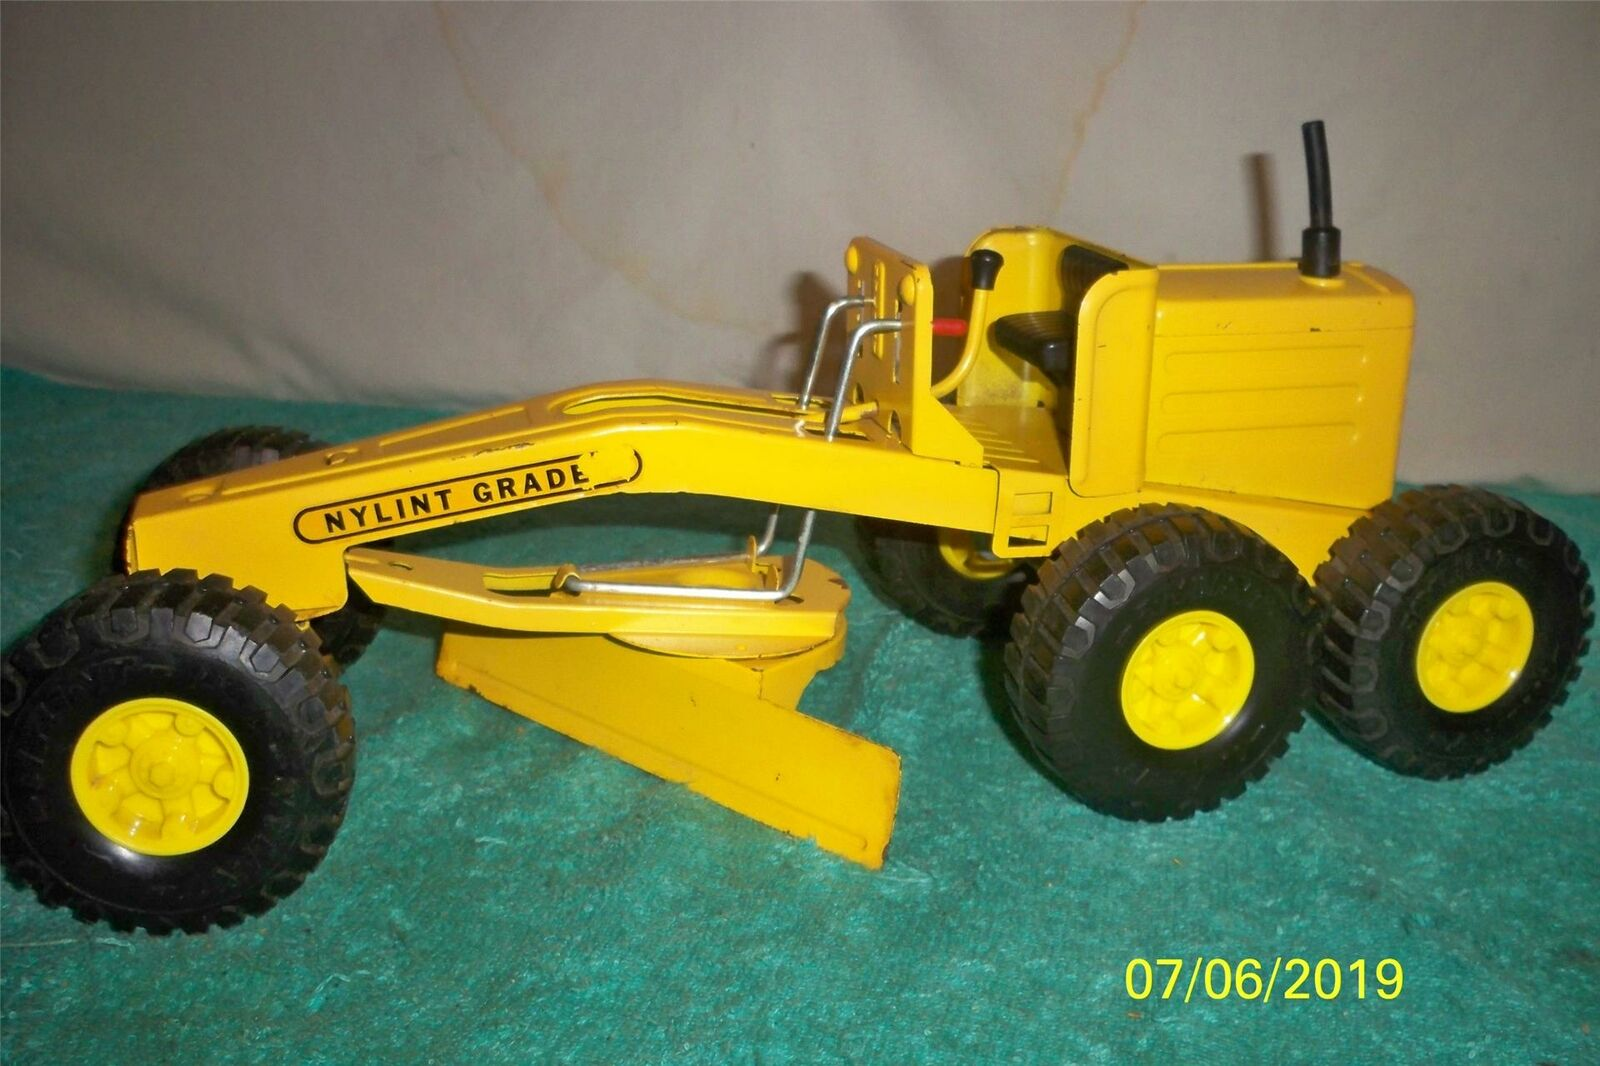 Nylint 3 Handle Road Grader 1970's Nice Fully Working old Toy 16   Long